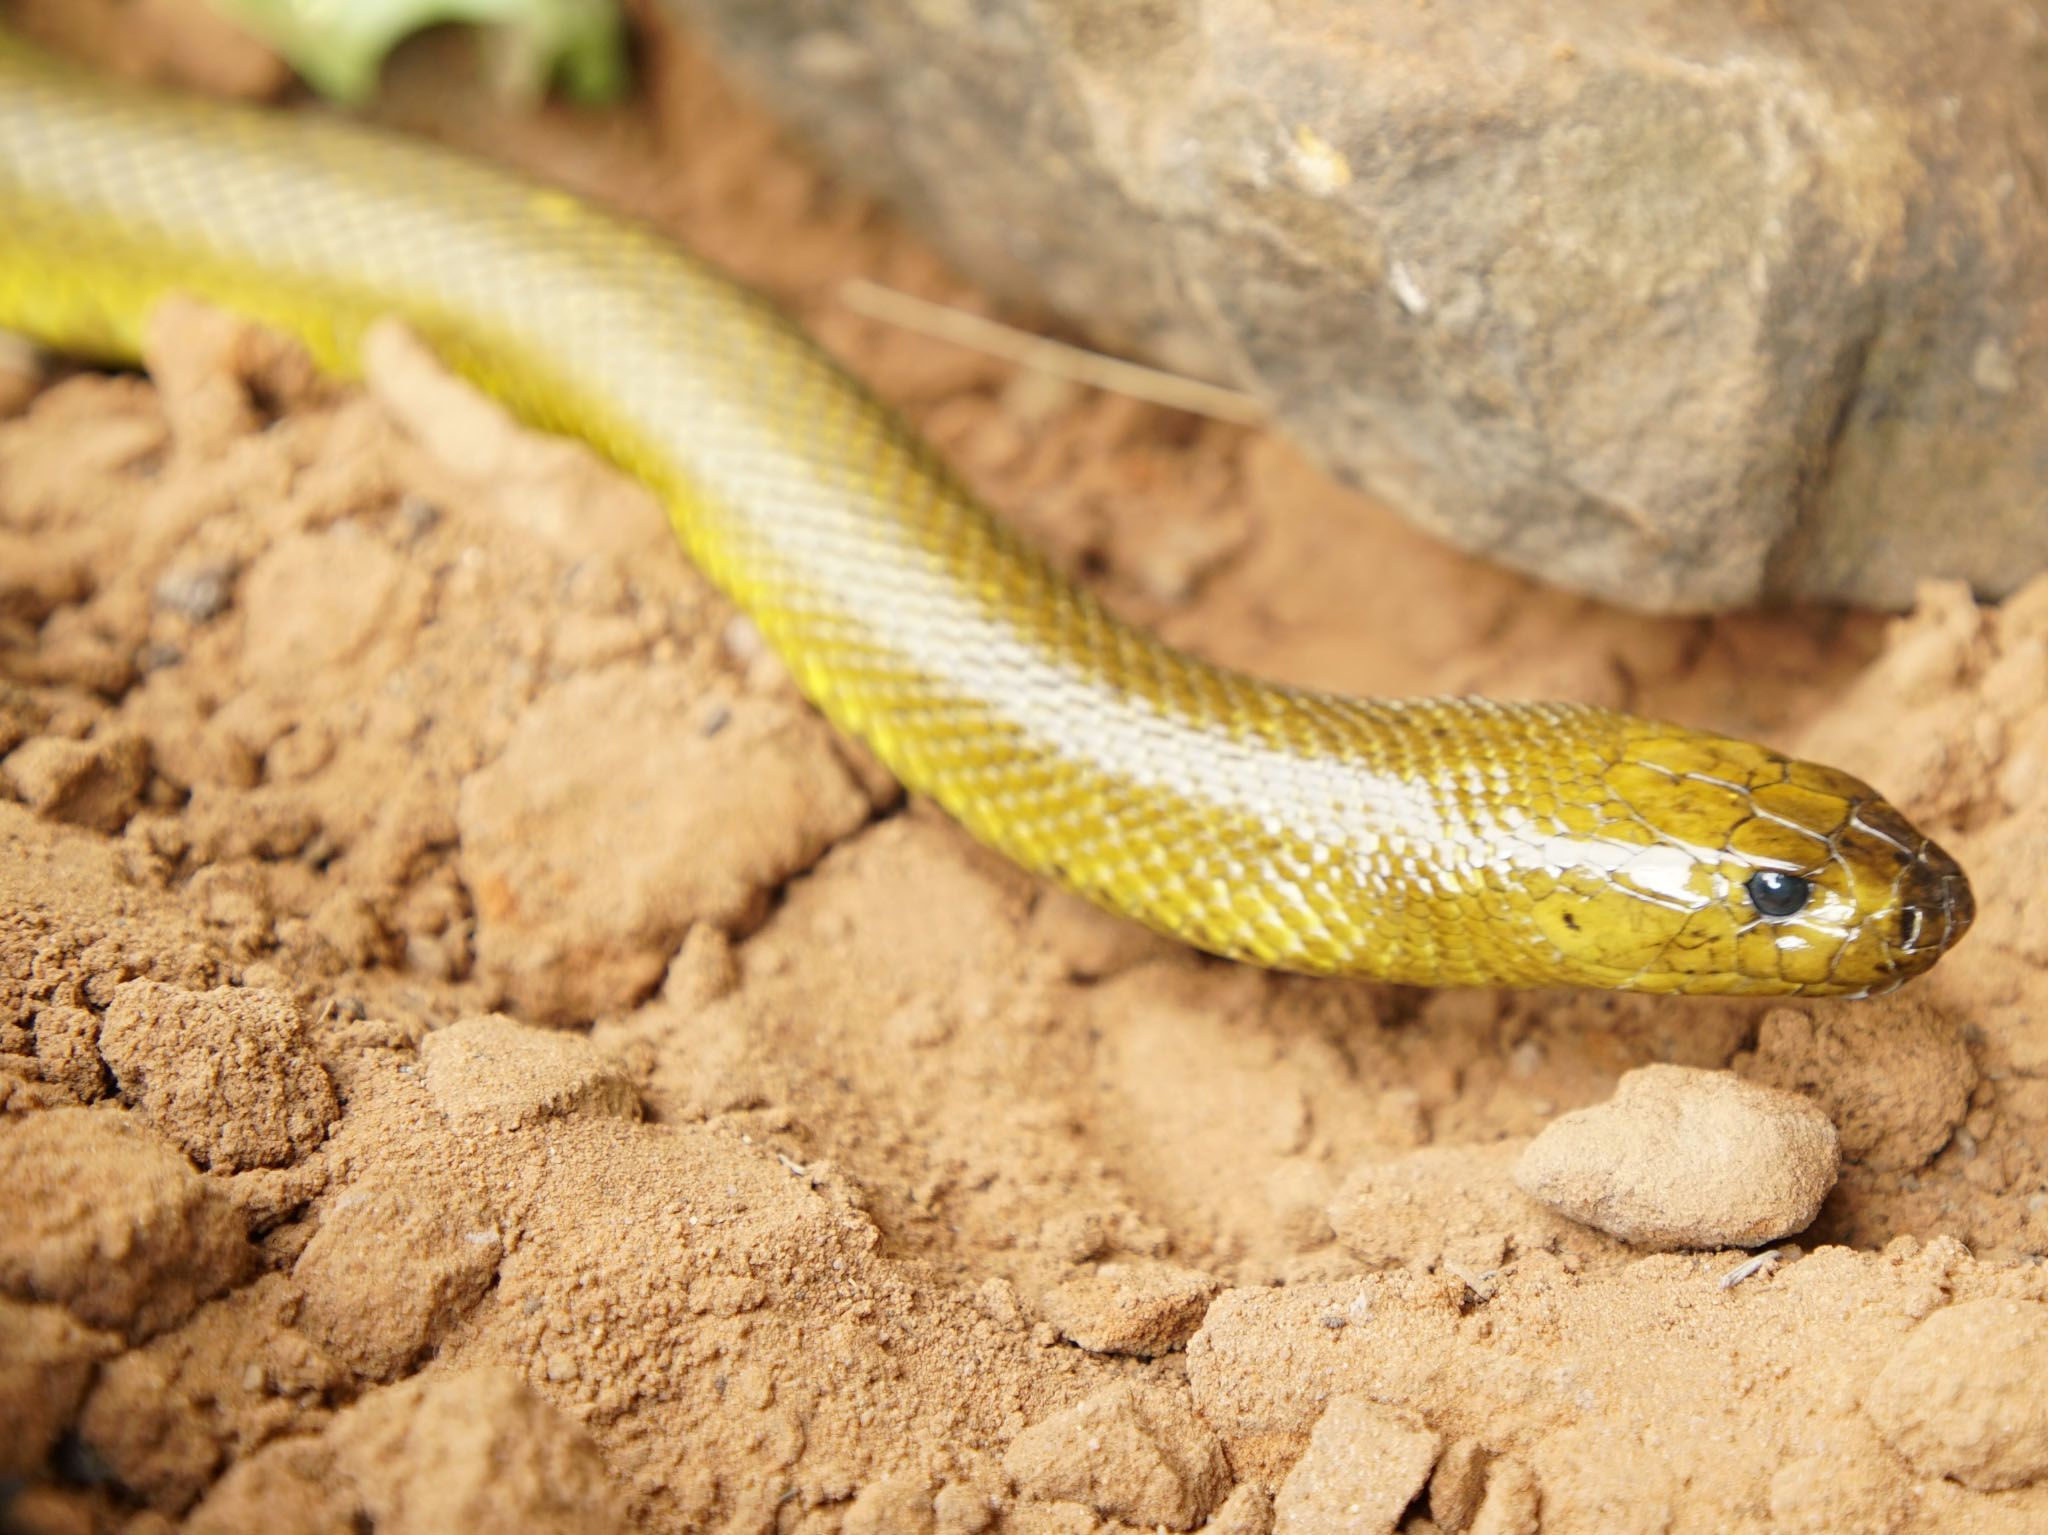 An inland taipan (Oxyuranus microlepidotus). This image is from World Deadliest Snakes. [Photo of the day - March 2021]